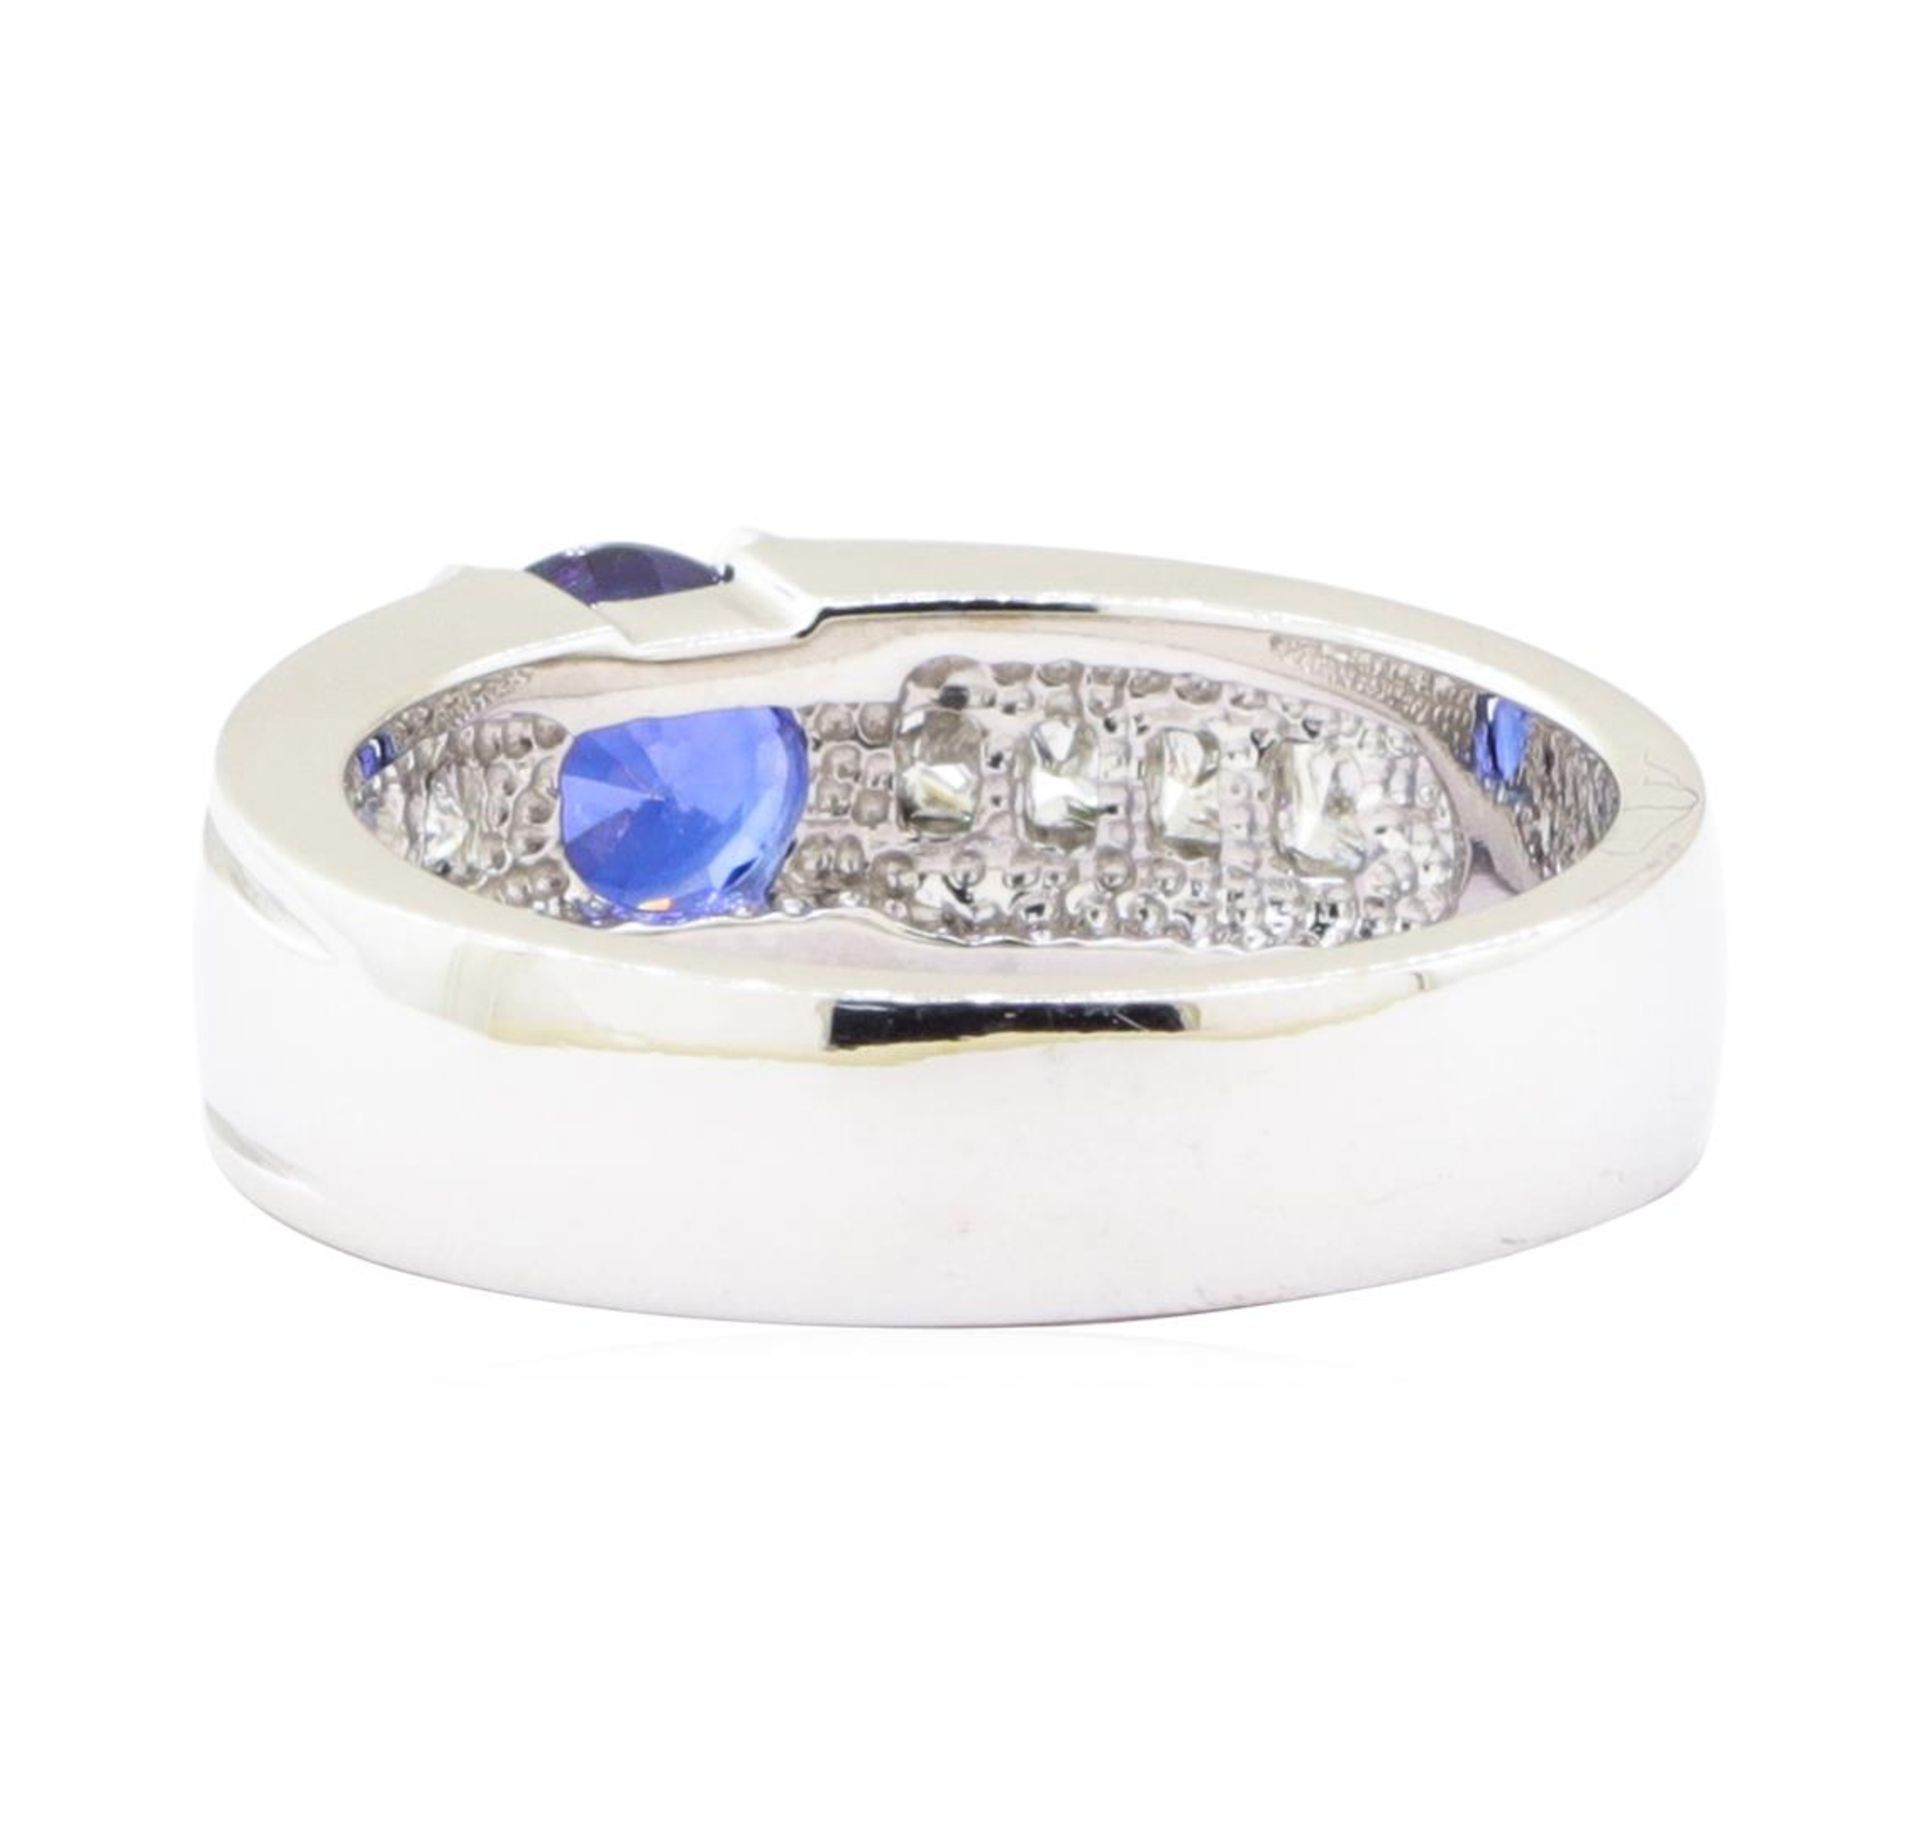 1.79ctw Sapphire and Diamond Ring - 14KT White Gold - Image 3 of 4